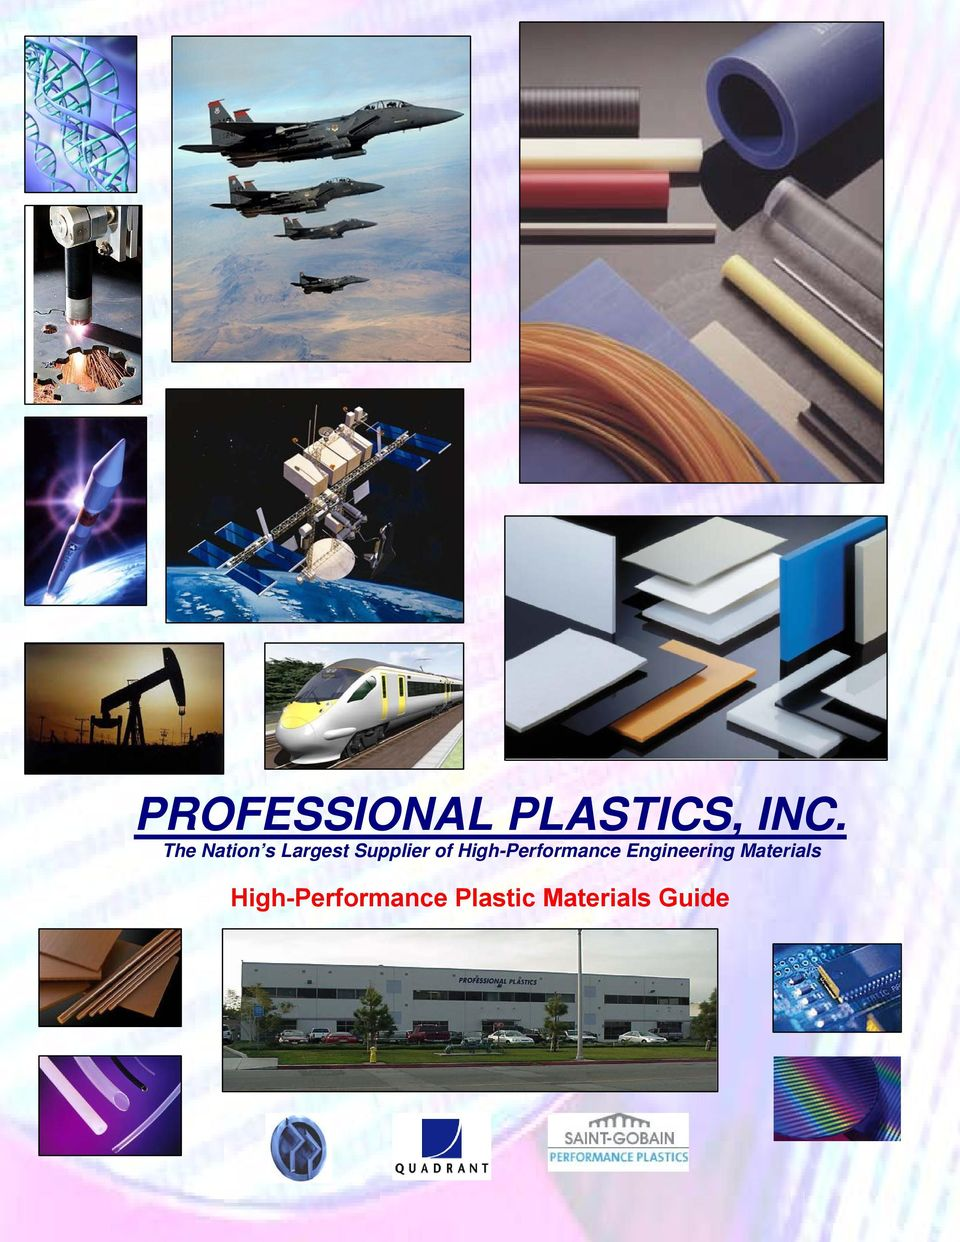 PROFESSIONAL PLASTICS, INC  The Nation s Largest Supplier of